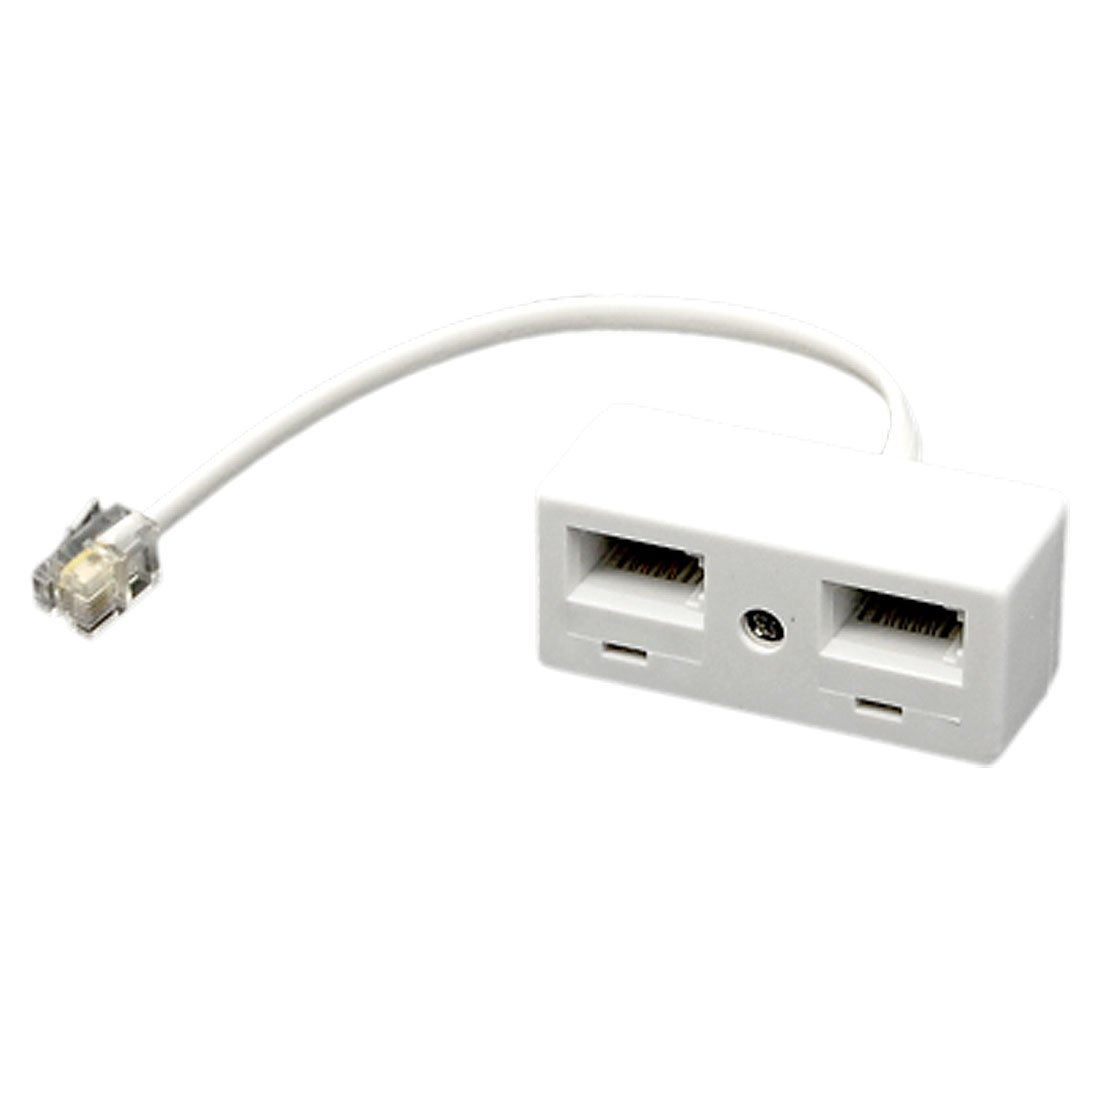 Buy Bt Uk And Get Free Shipping On Telephone Box Wiring